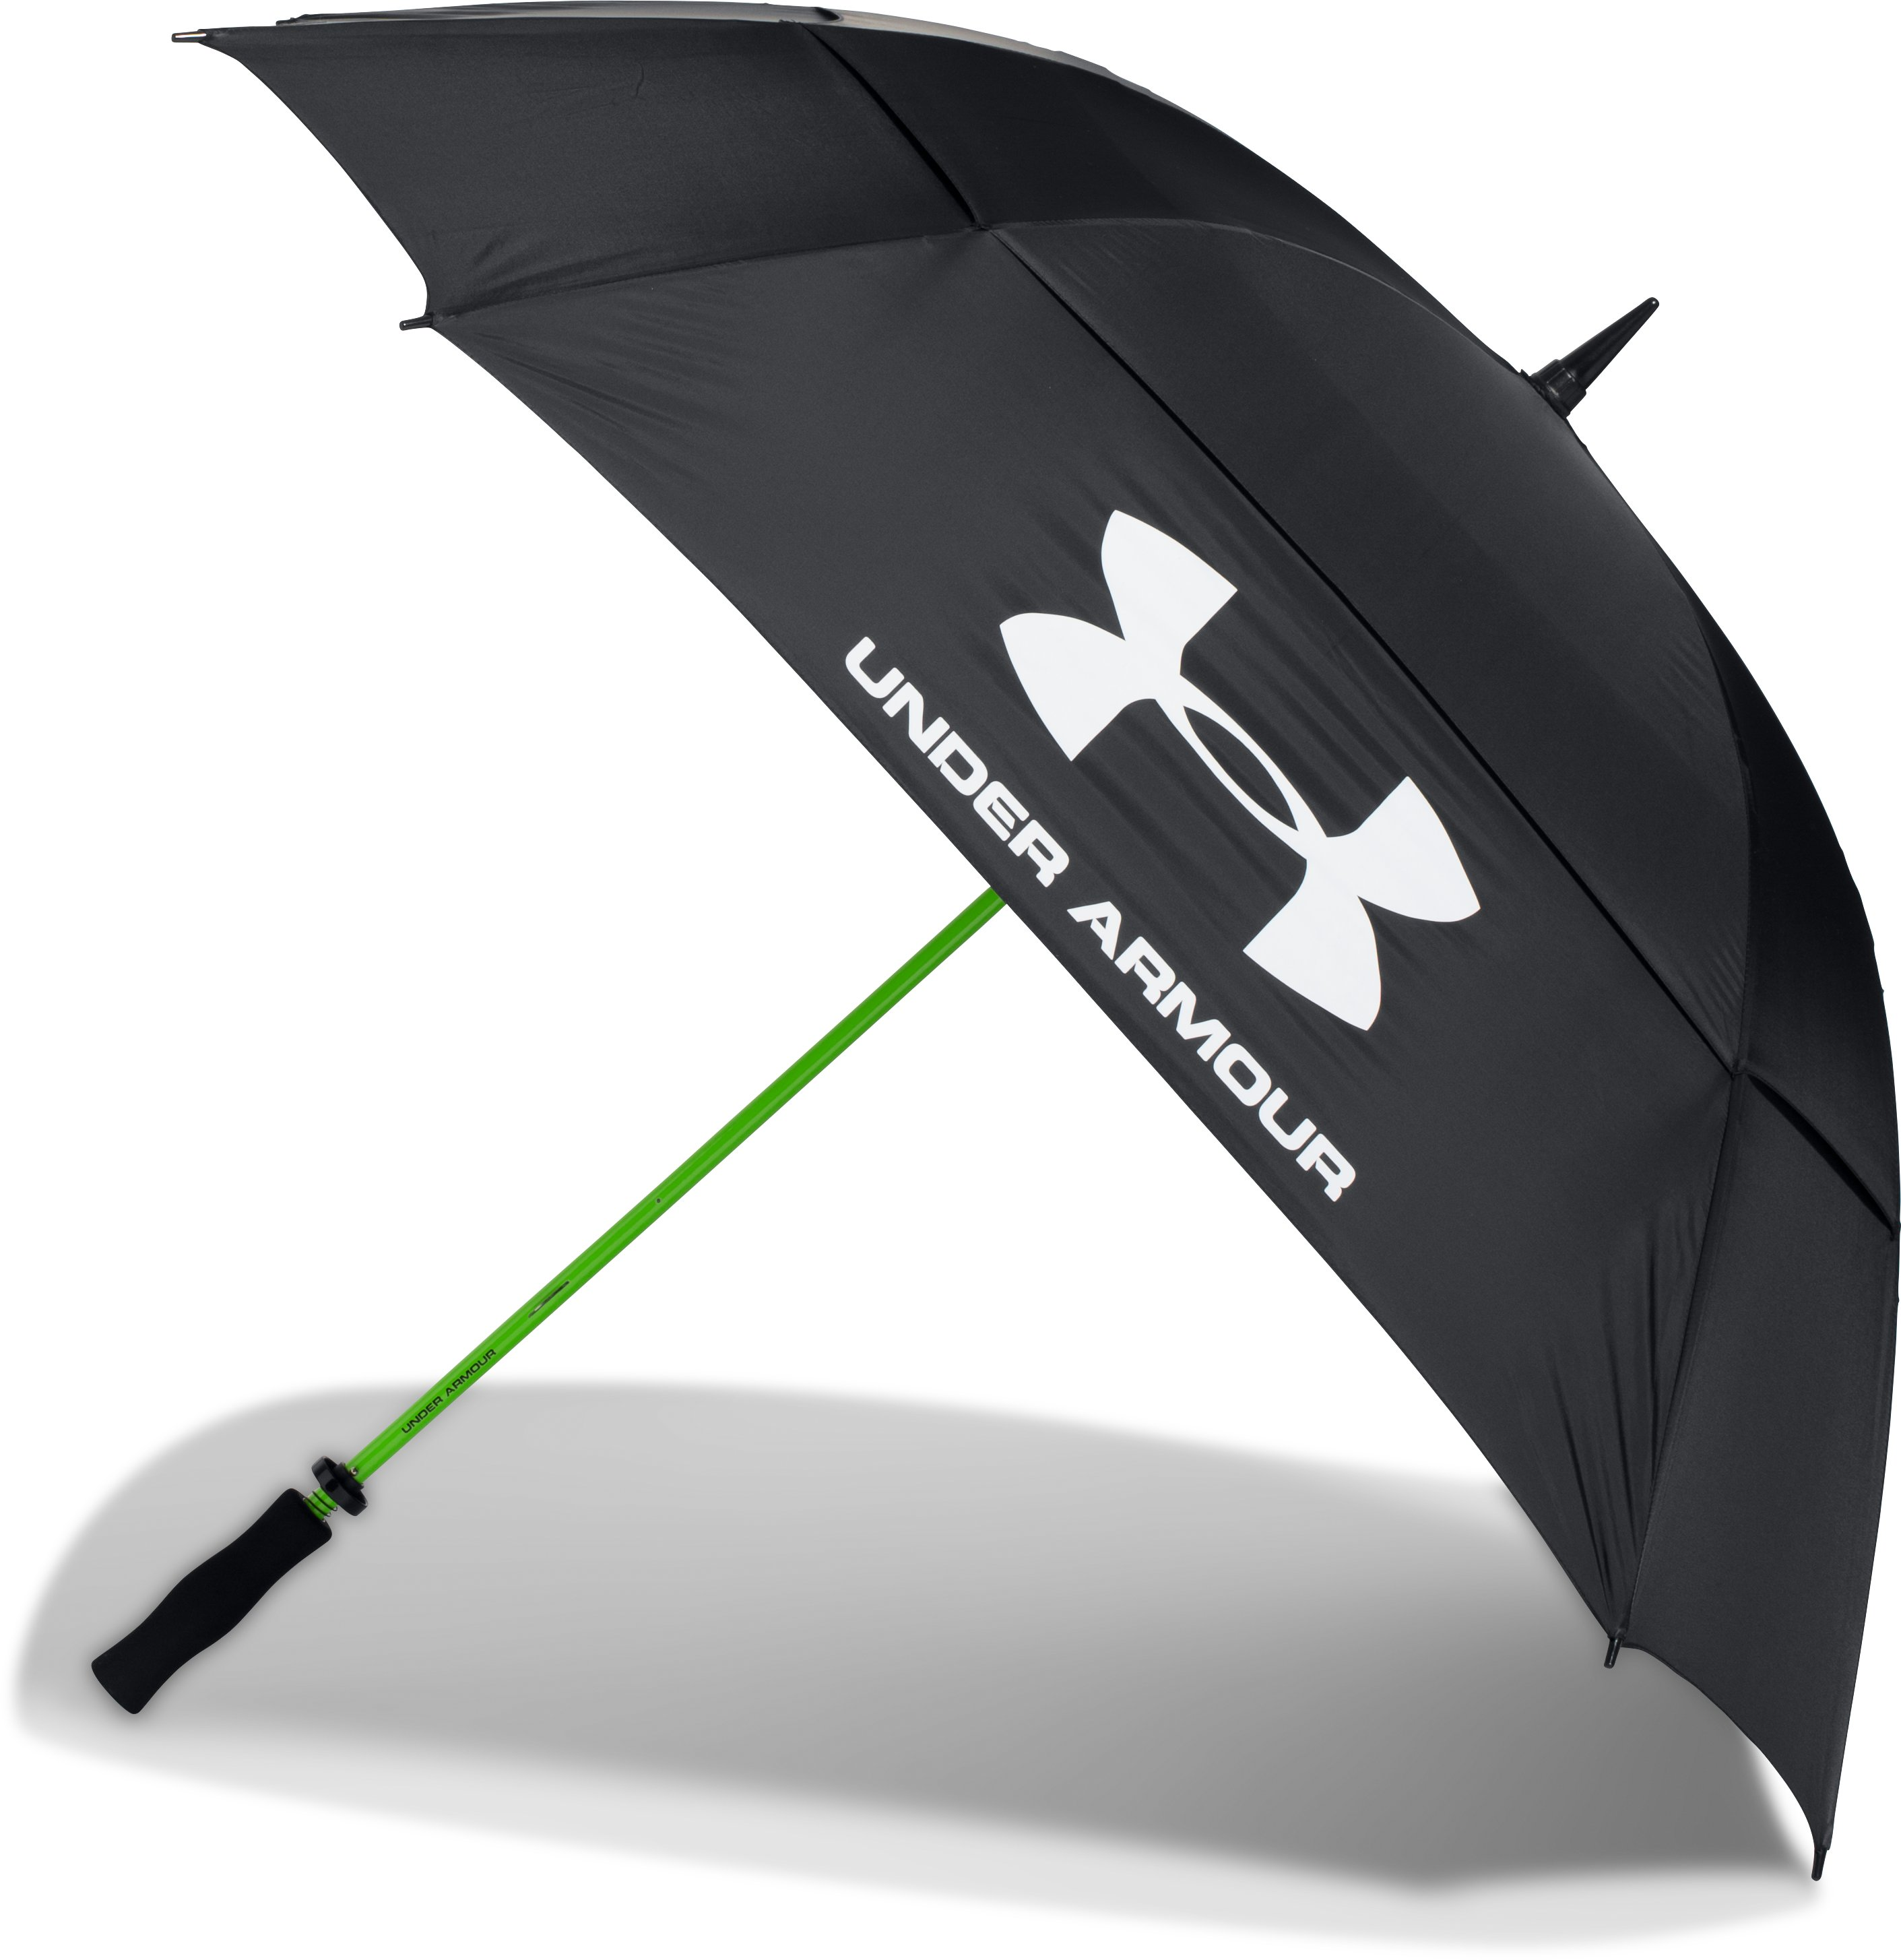 UA Golf Umbrella — Double Canopy, Black